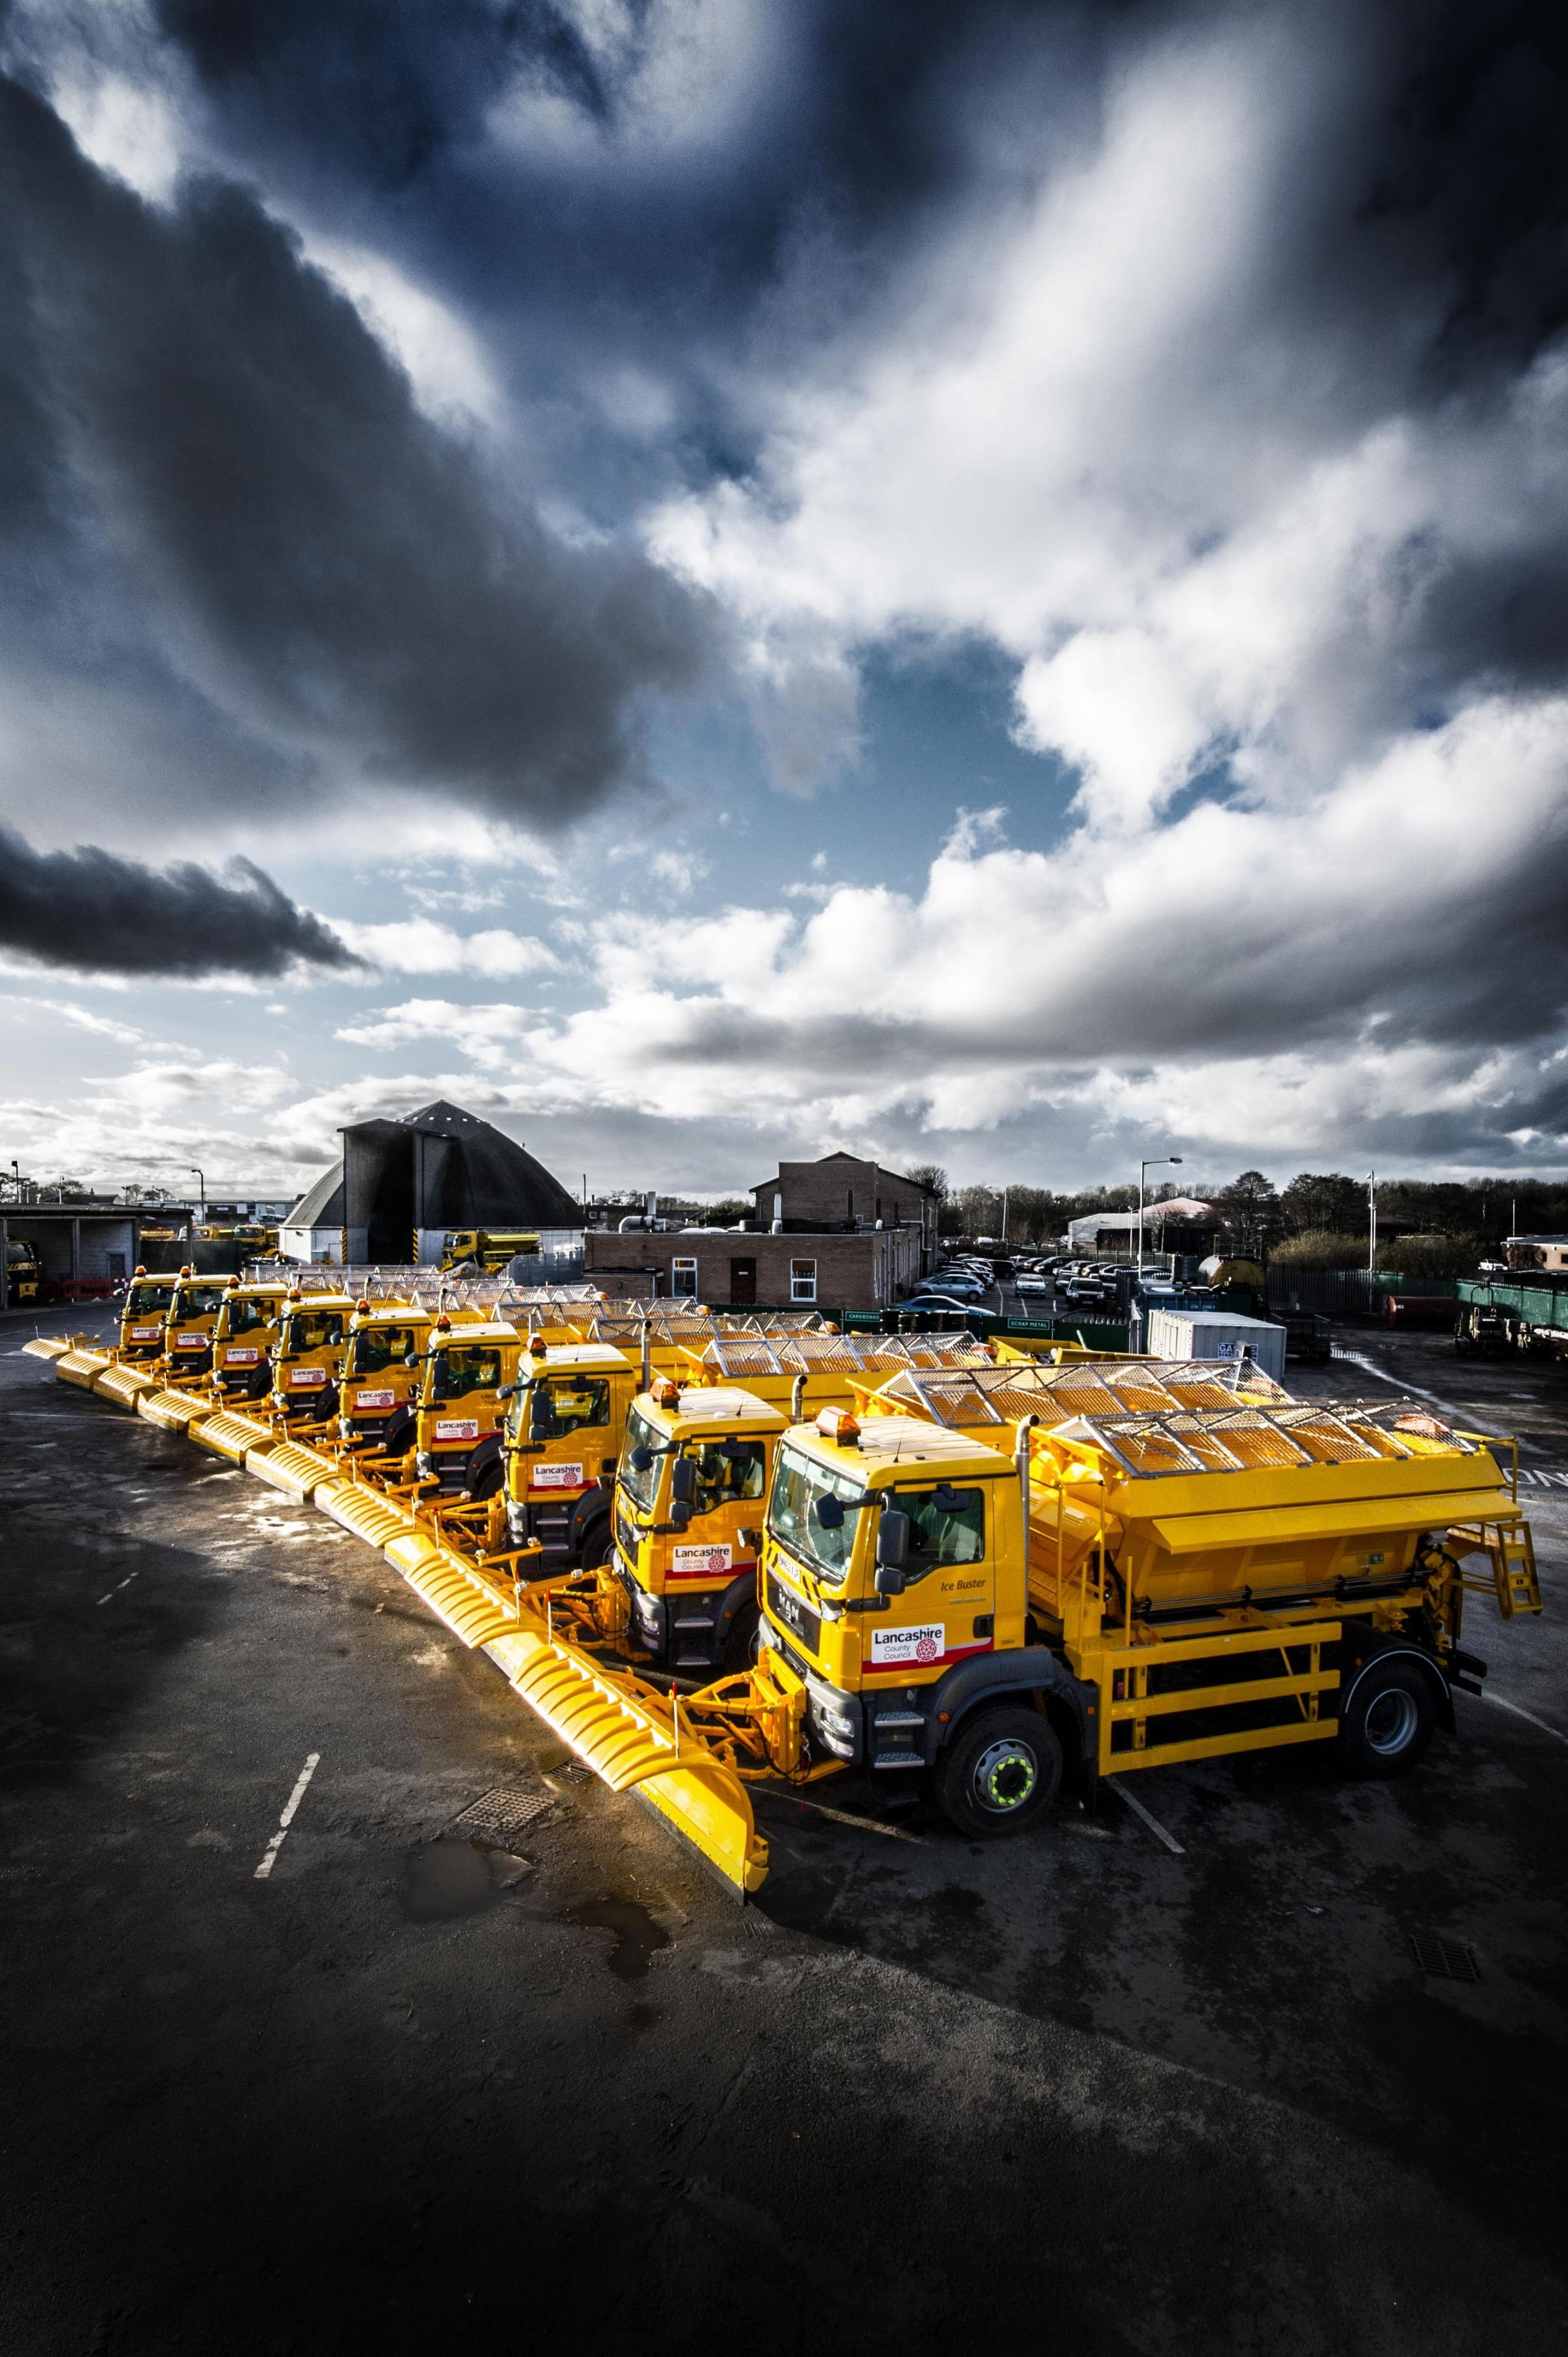 Gritters all set to clear the roads of snow and ice this winter